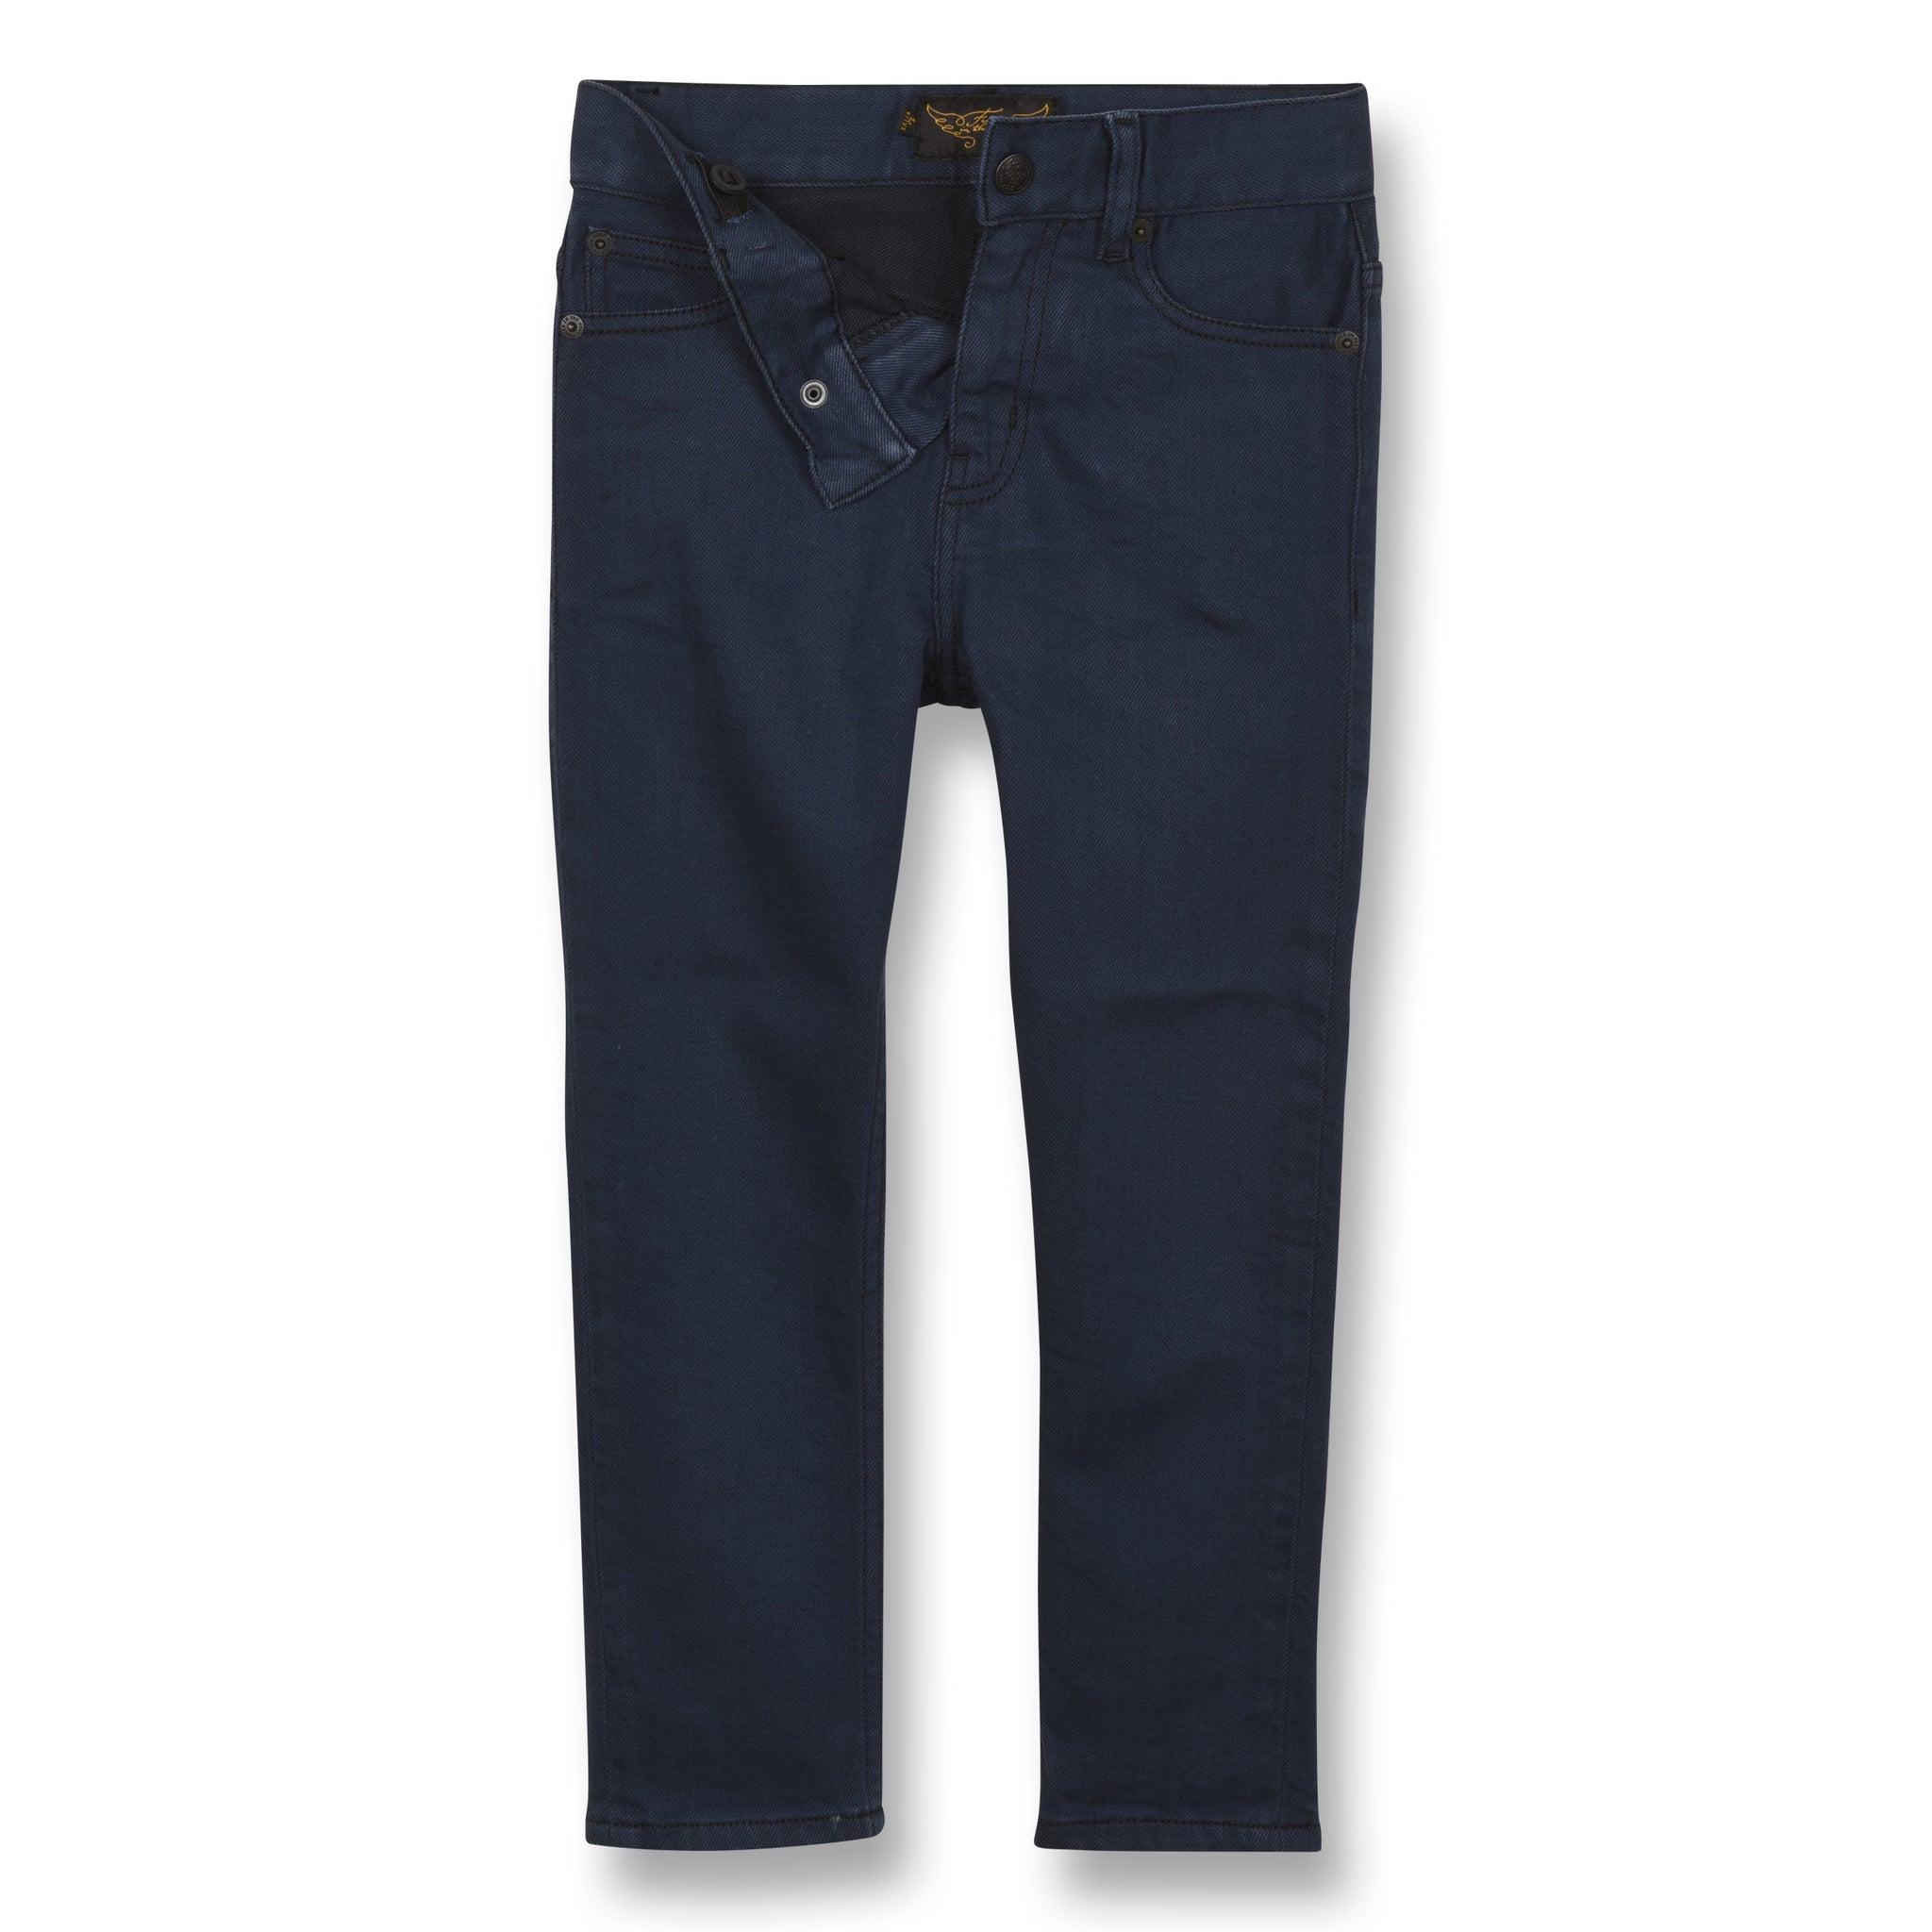 EWAN Sulphur Blue - 5 Pocket Comfort Fit Jeans